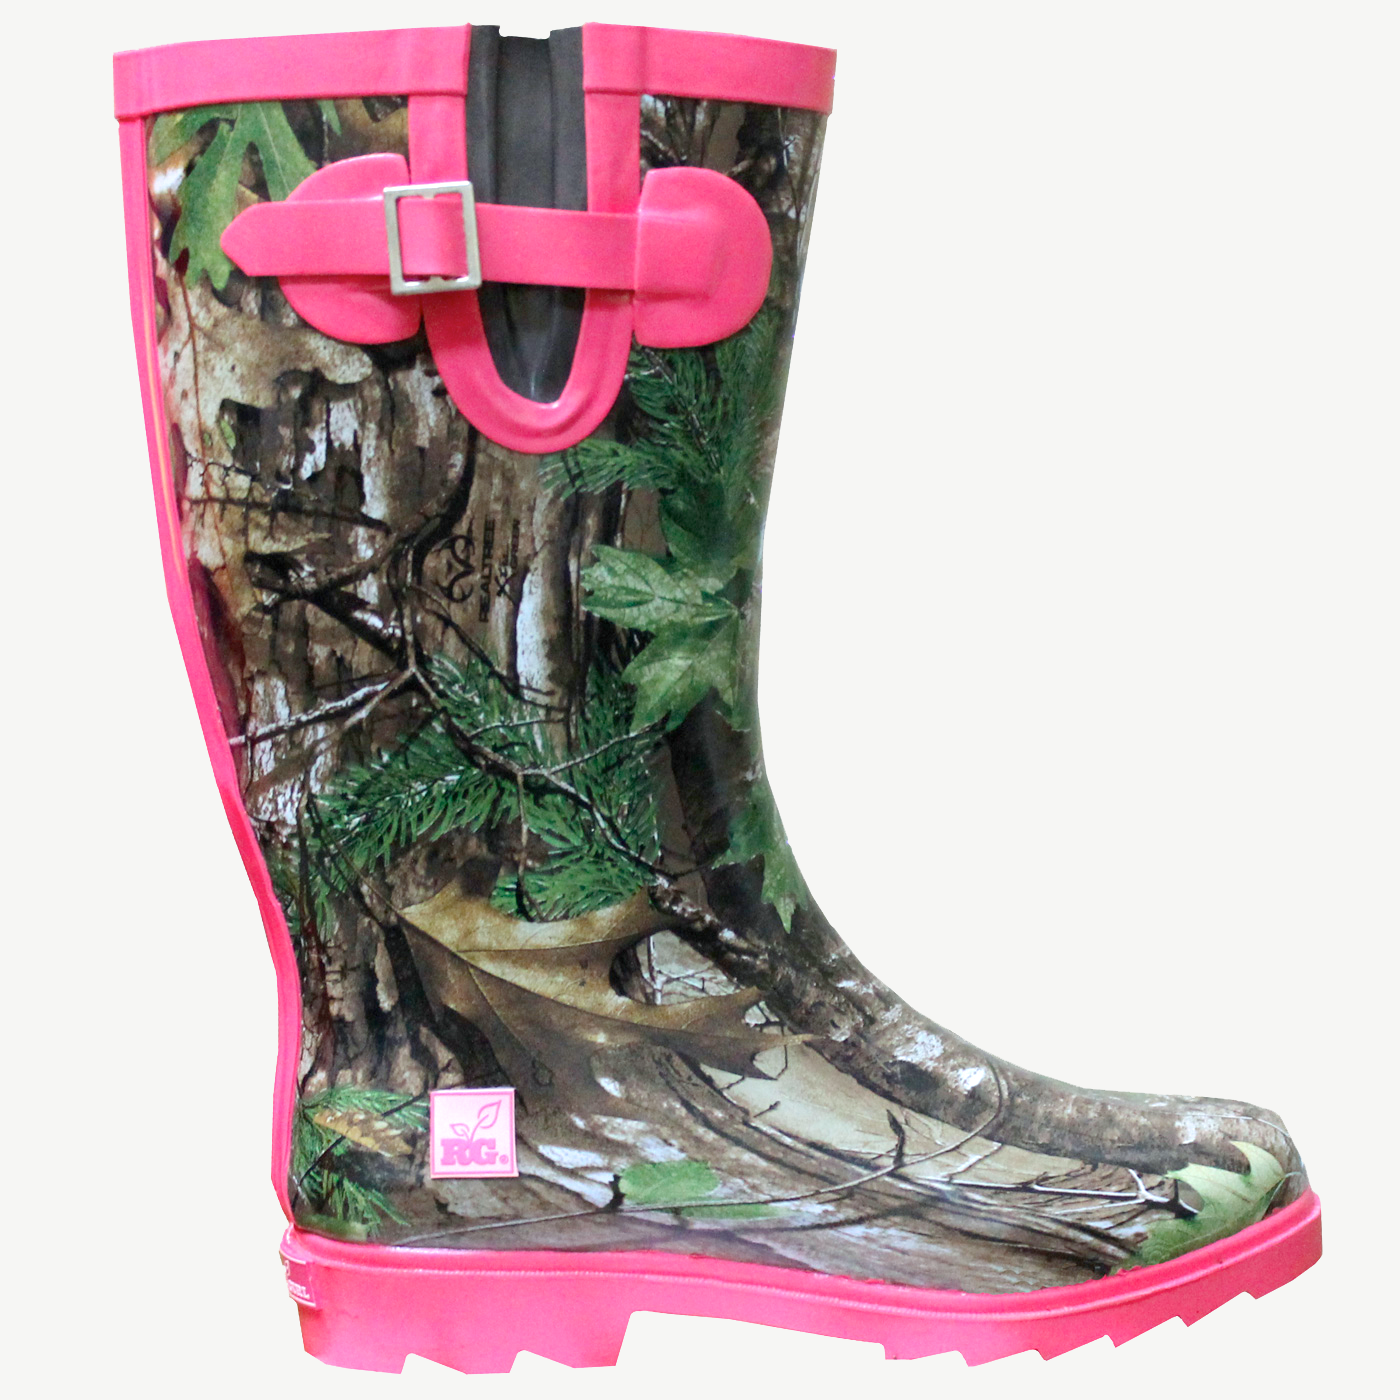 Pink And Camo Muck Boots - Cr Boot